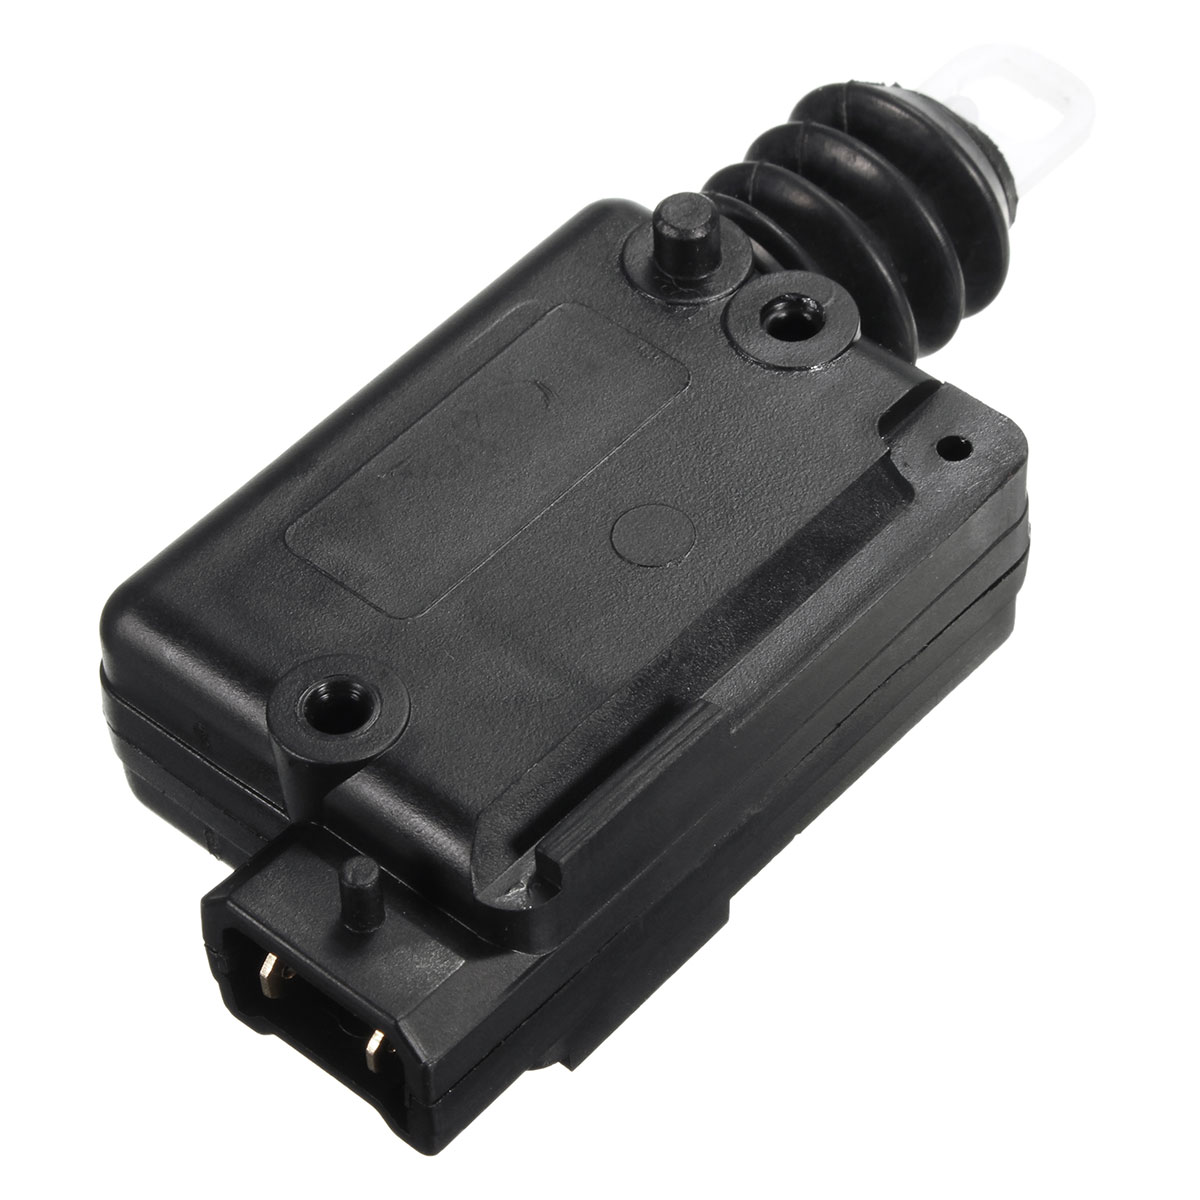 Image 5 - Front Left / Front Right Side Version 2 Pins 7702127213 7701039565 Door Lock Actuator For Renault 19 /CLIO I II /MEGANE /SCENIC-in Locks & Hardware from Automobiles & Motorcycles